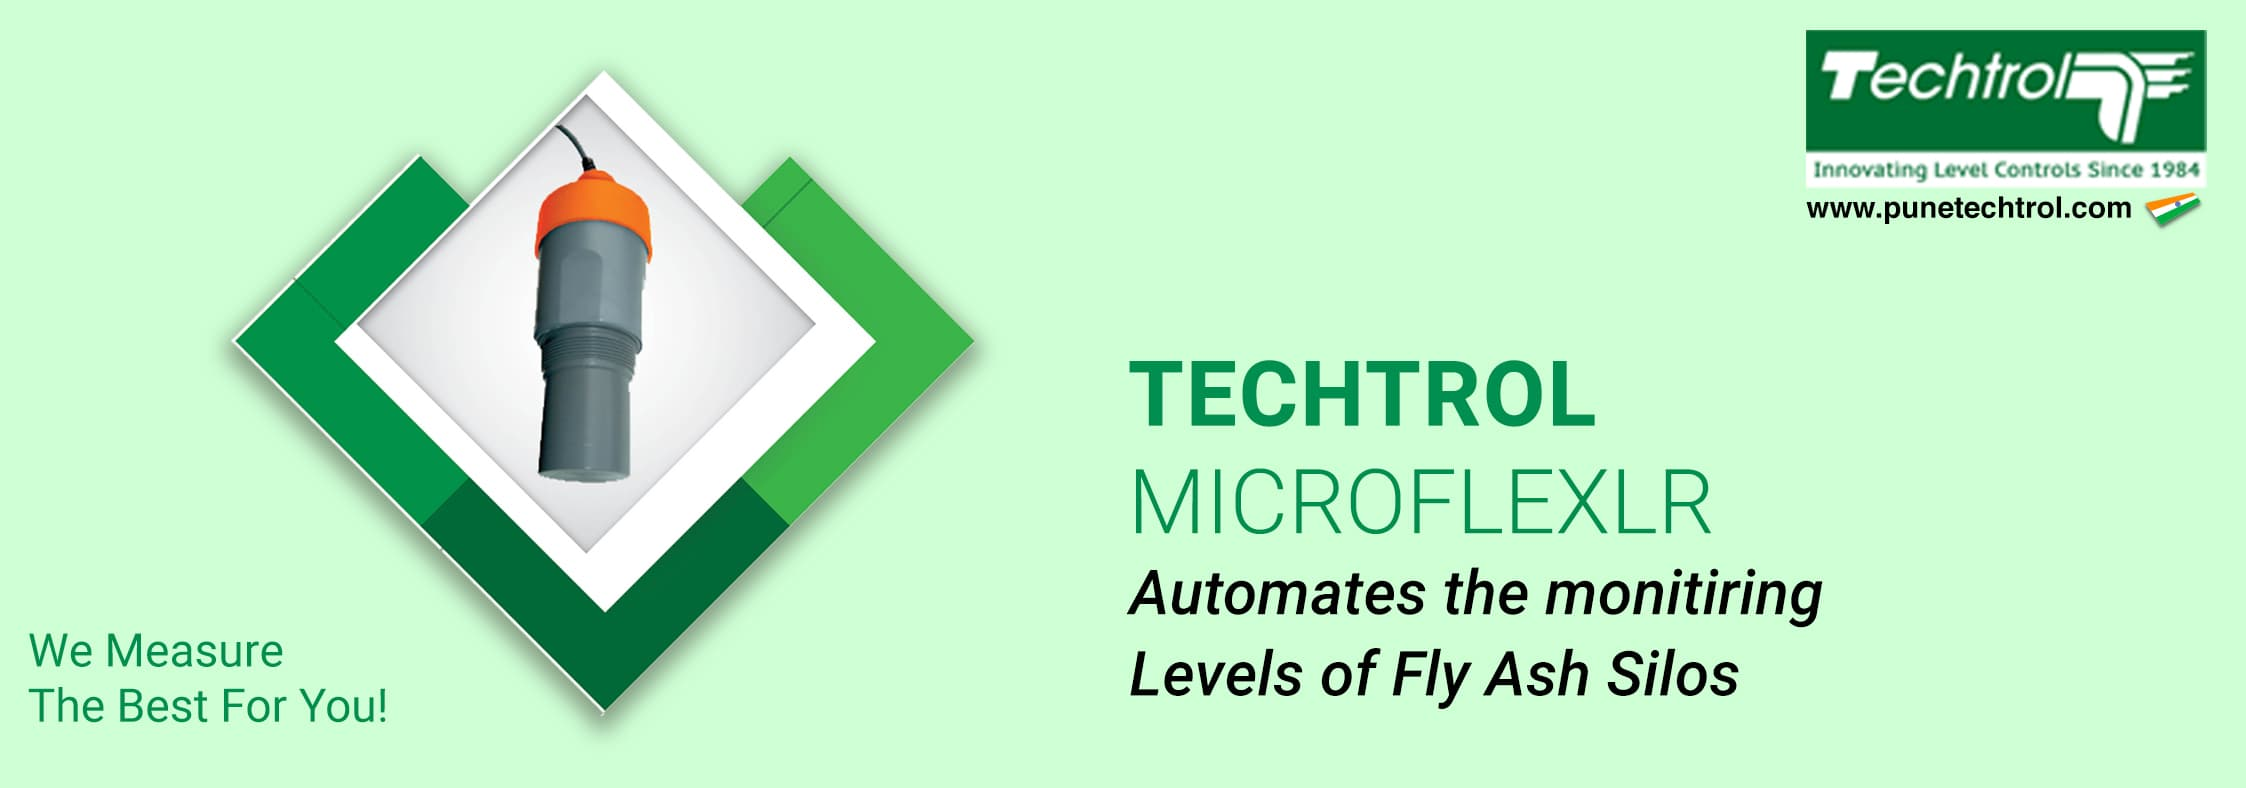 Techtrol Microflex-LRon Fly-Ash Silosof The Uttam Galva Steels